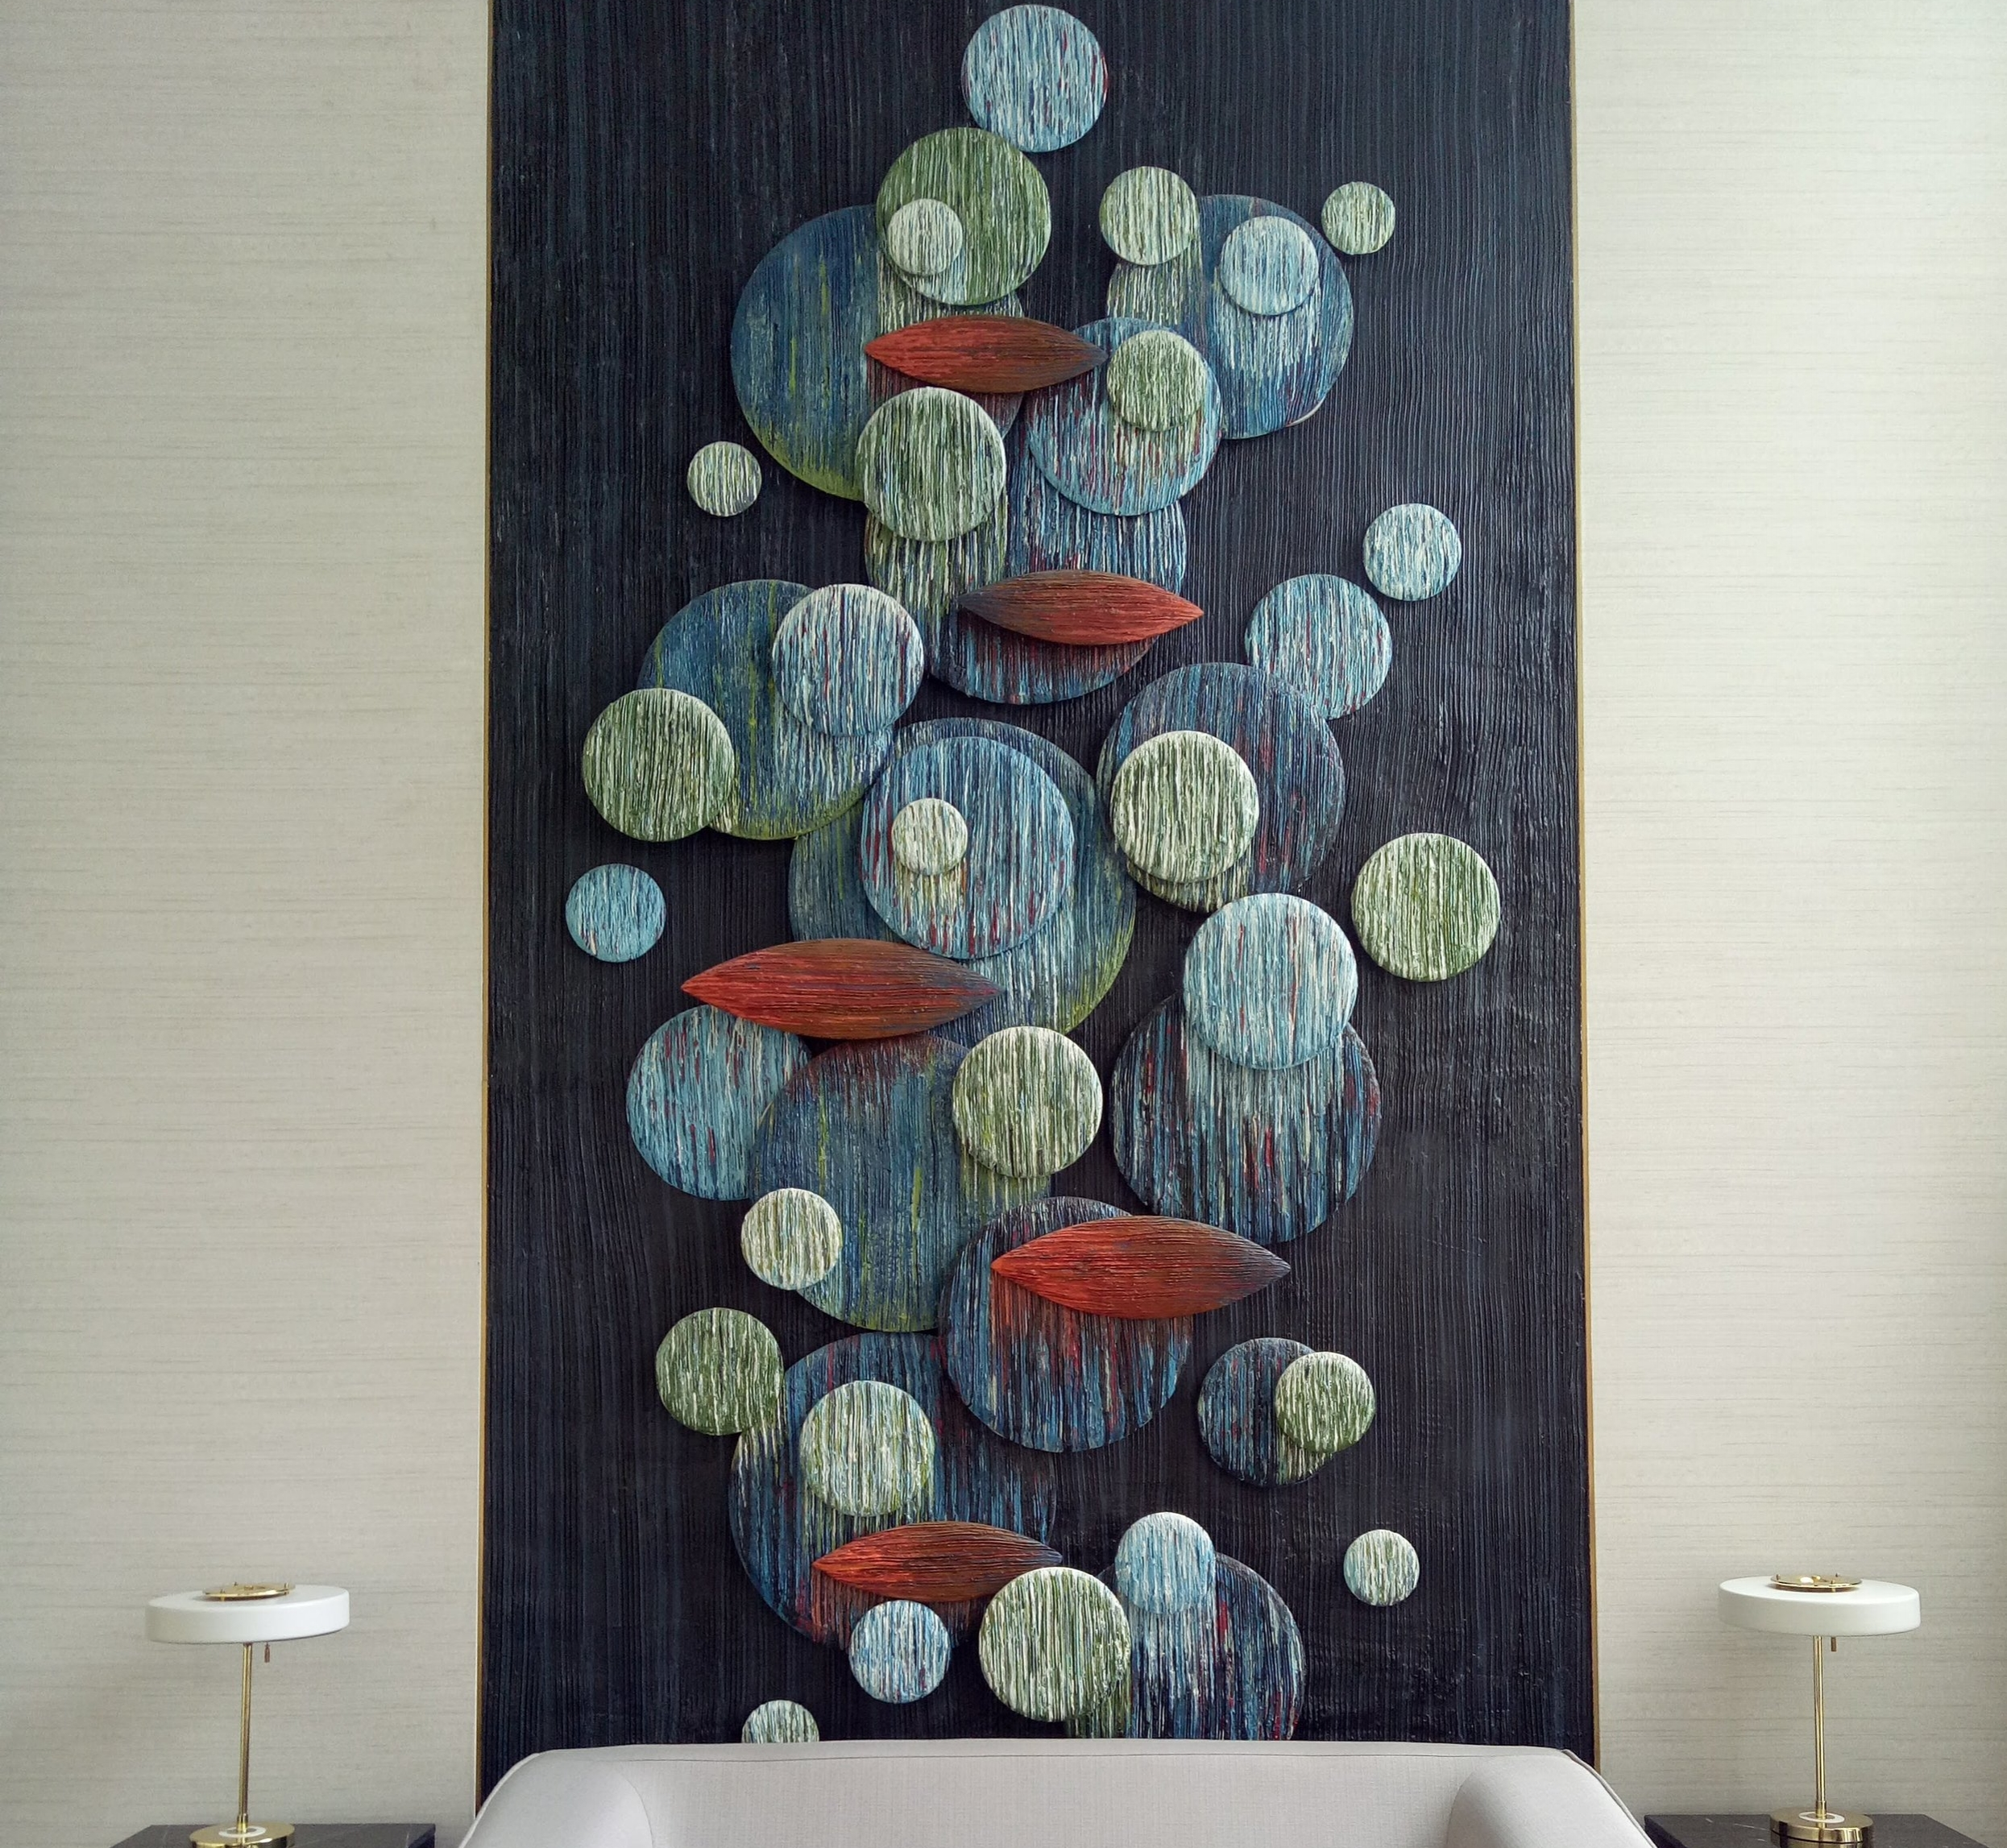 2D Wall Sculpture